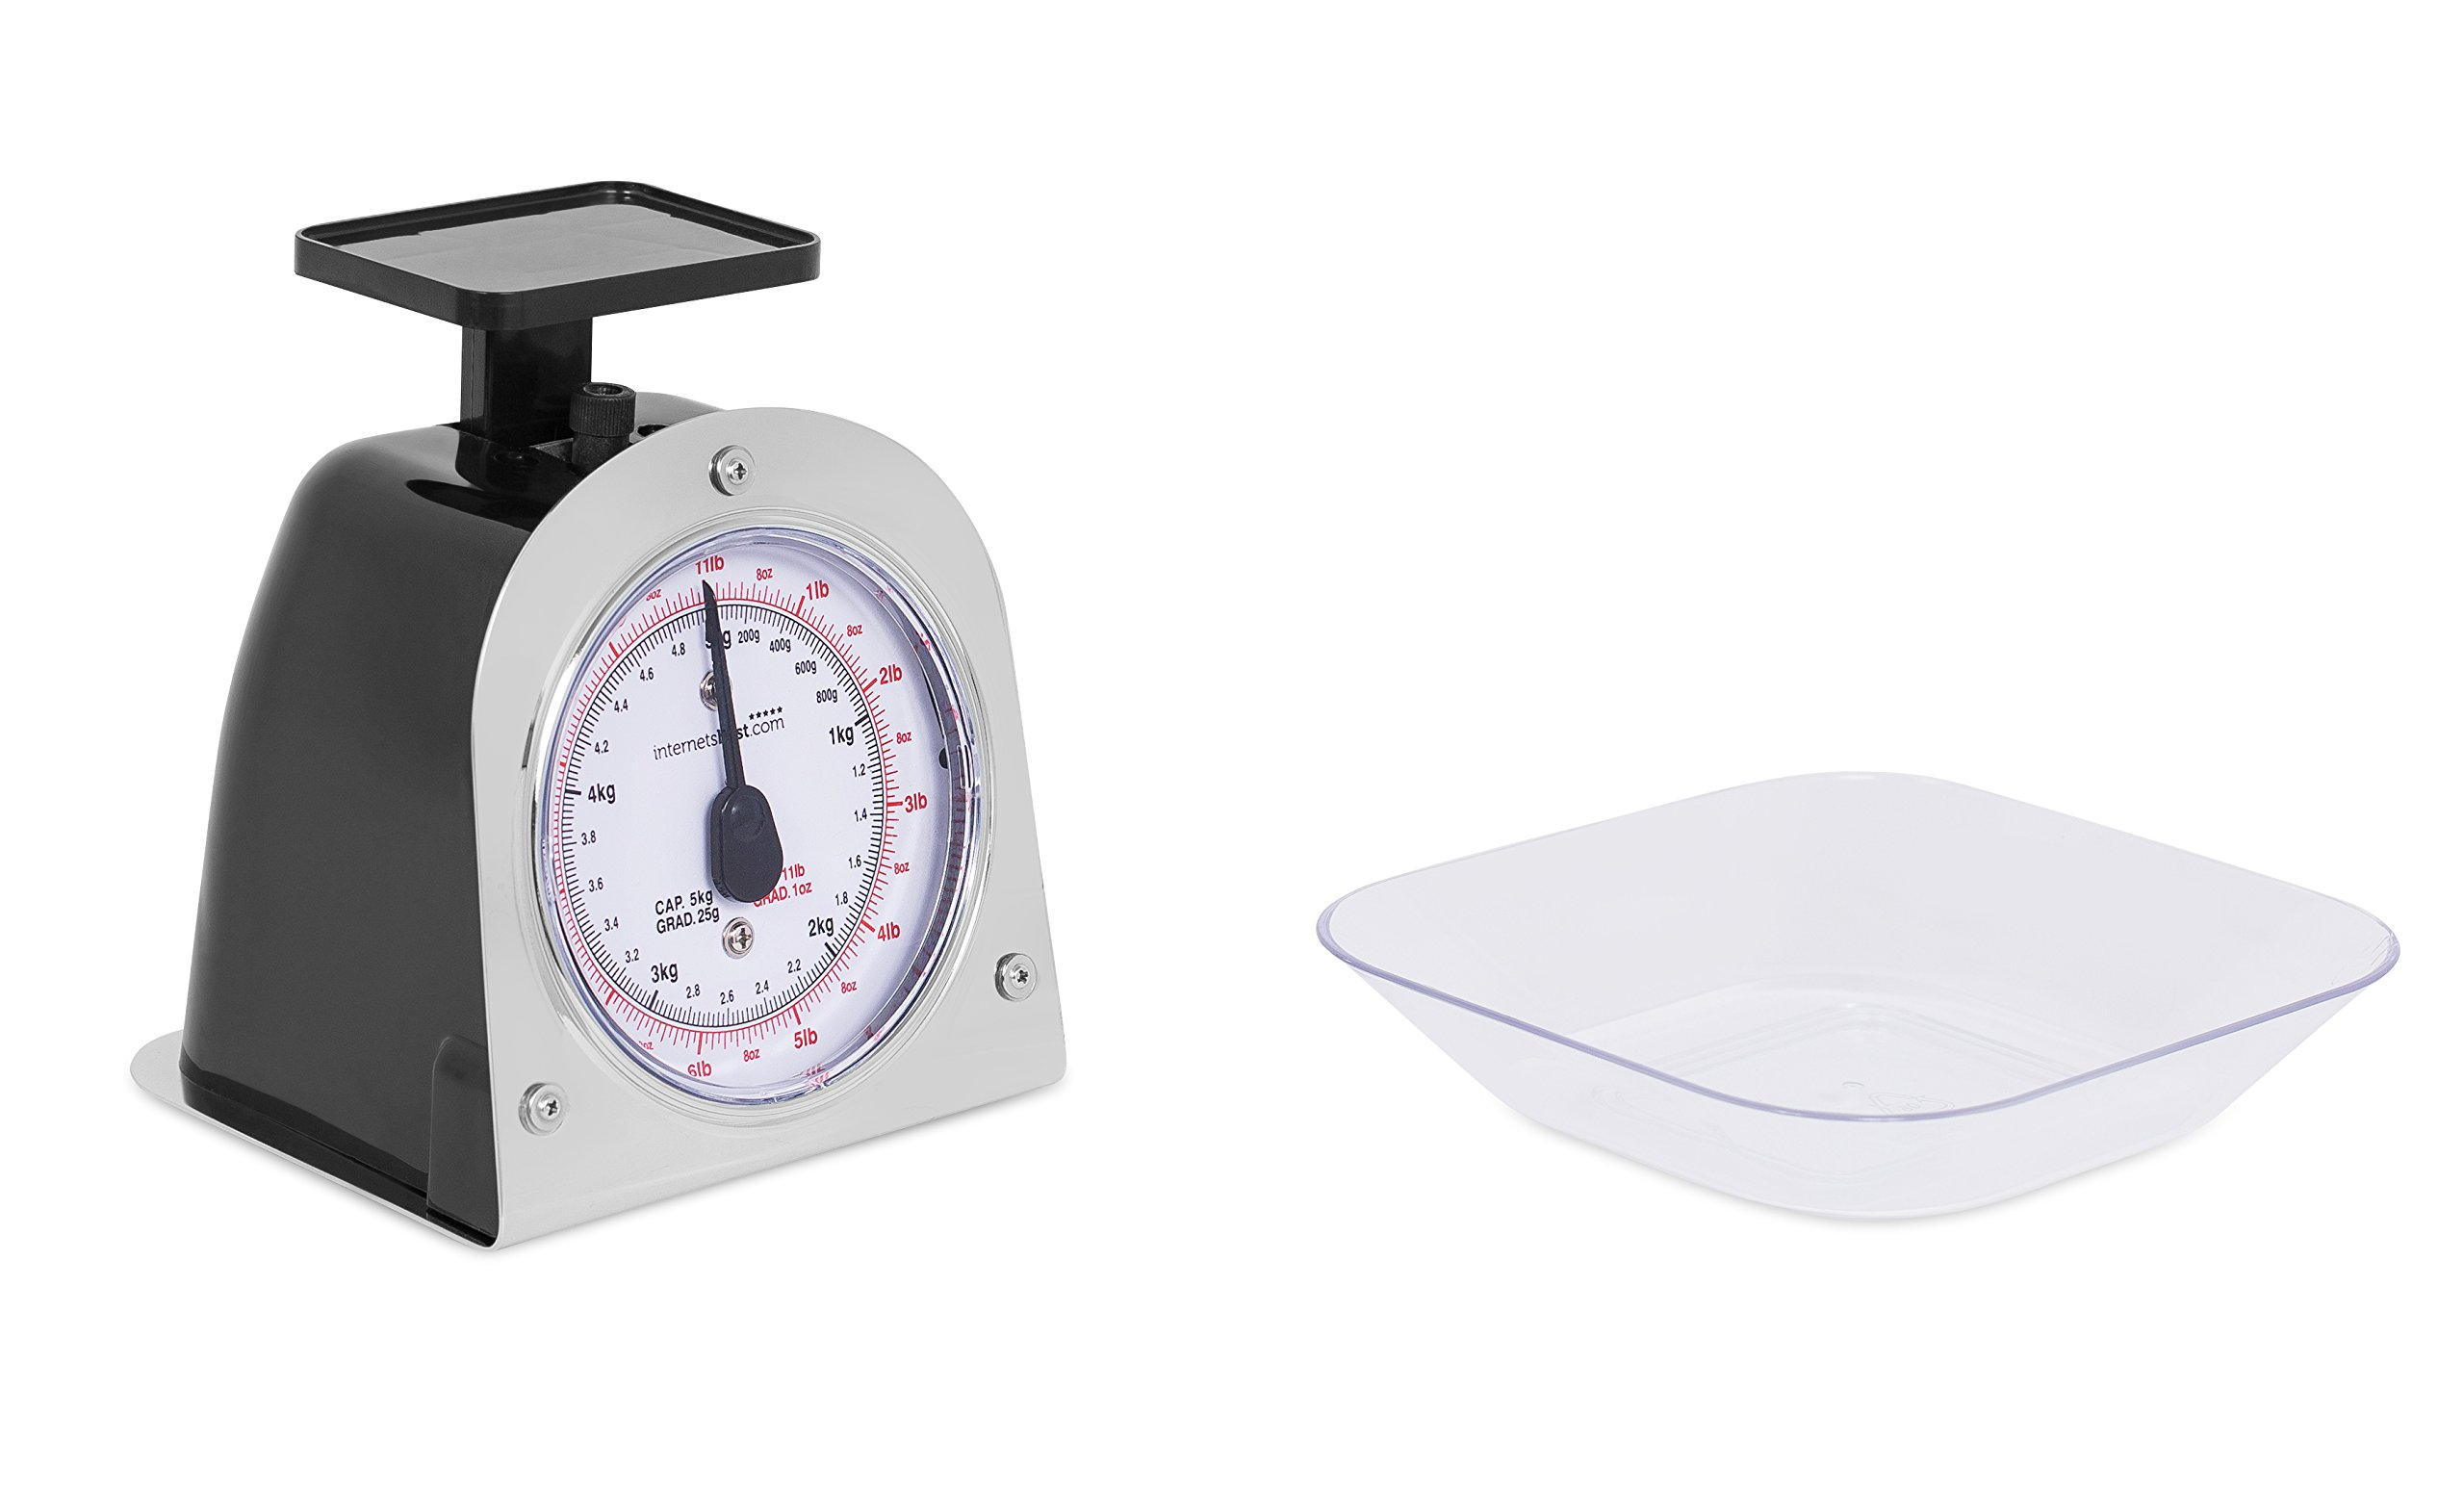 Internet's Best Mechanical Kitchen Food Weight Scale with Bowl | Accurate Measurements | Weighs Up 11 Lbs | 1KG - 5KG by Internet's Best (Image #3)